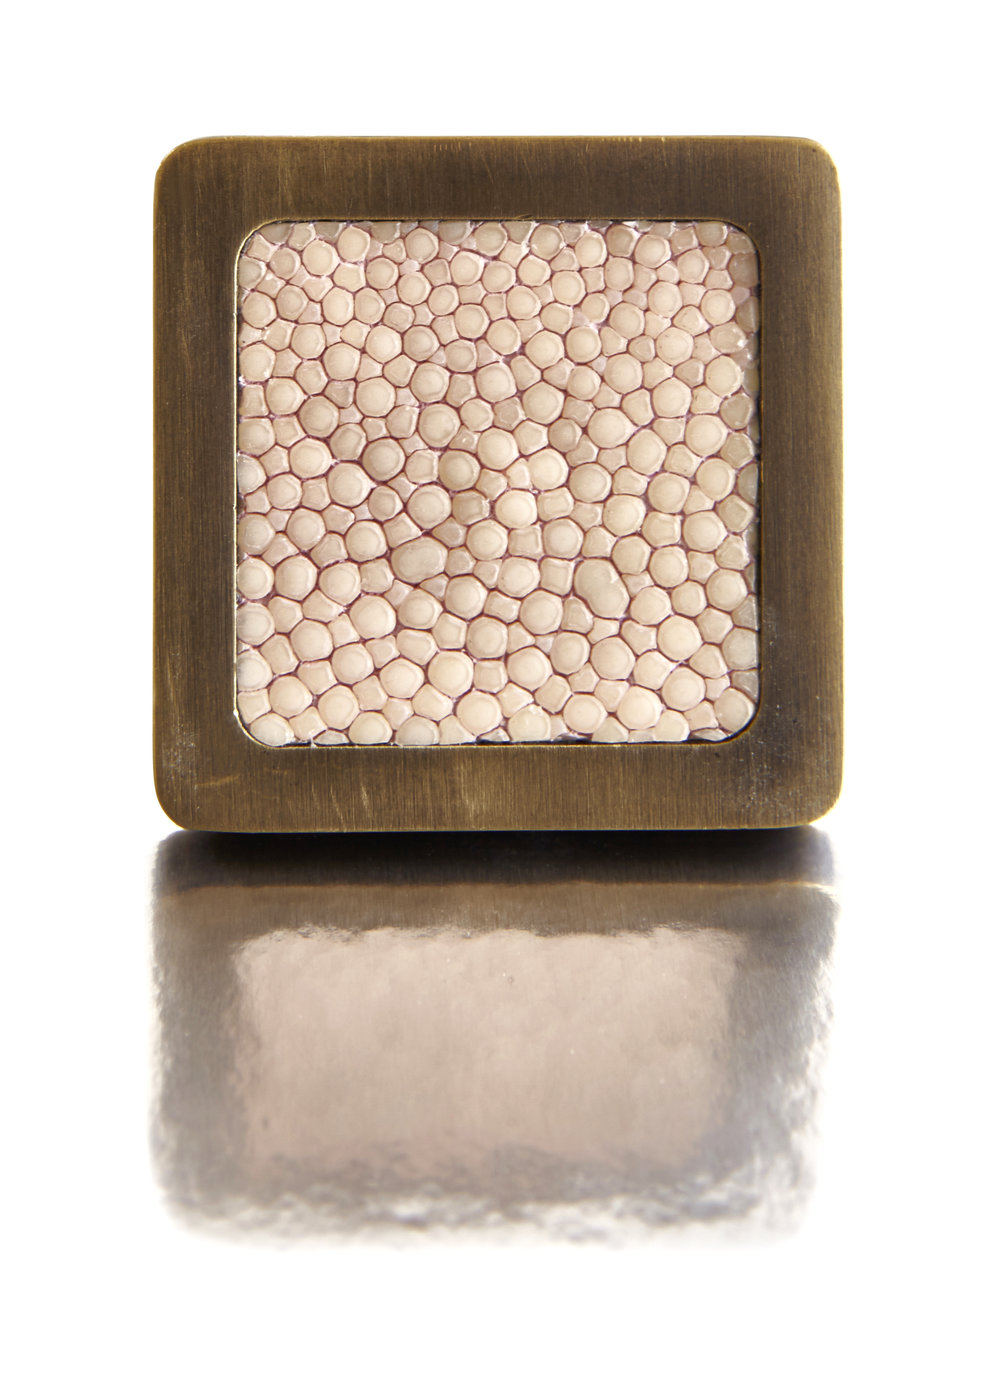 SQUARE KNOB I ROSE PETAL I CAVIAR   Antique Bronze & Shagreen